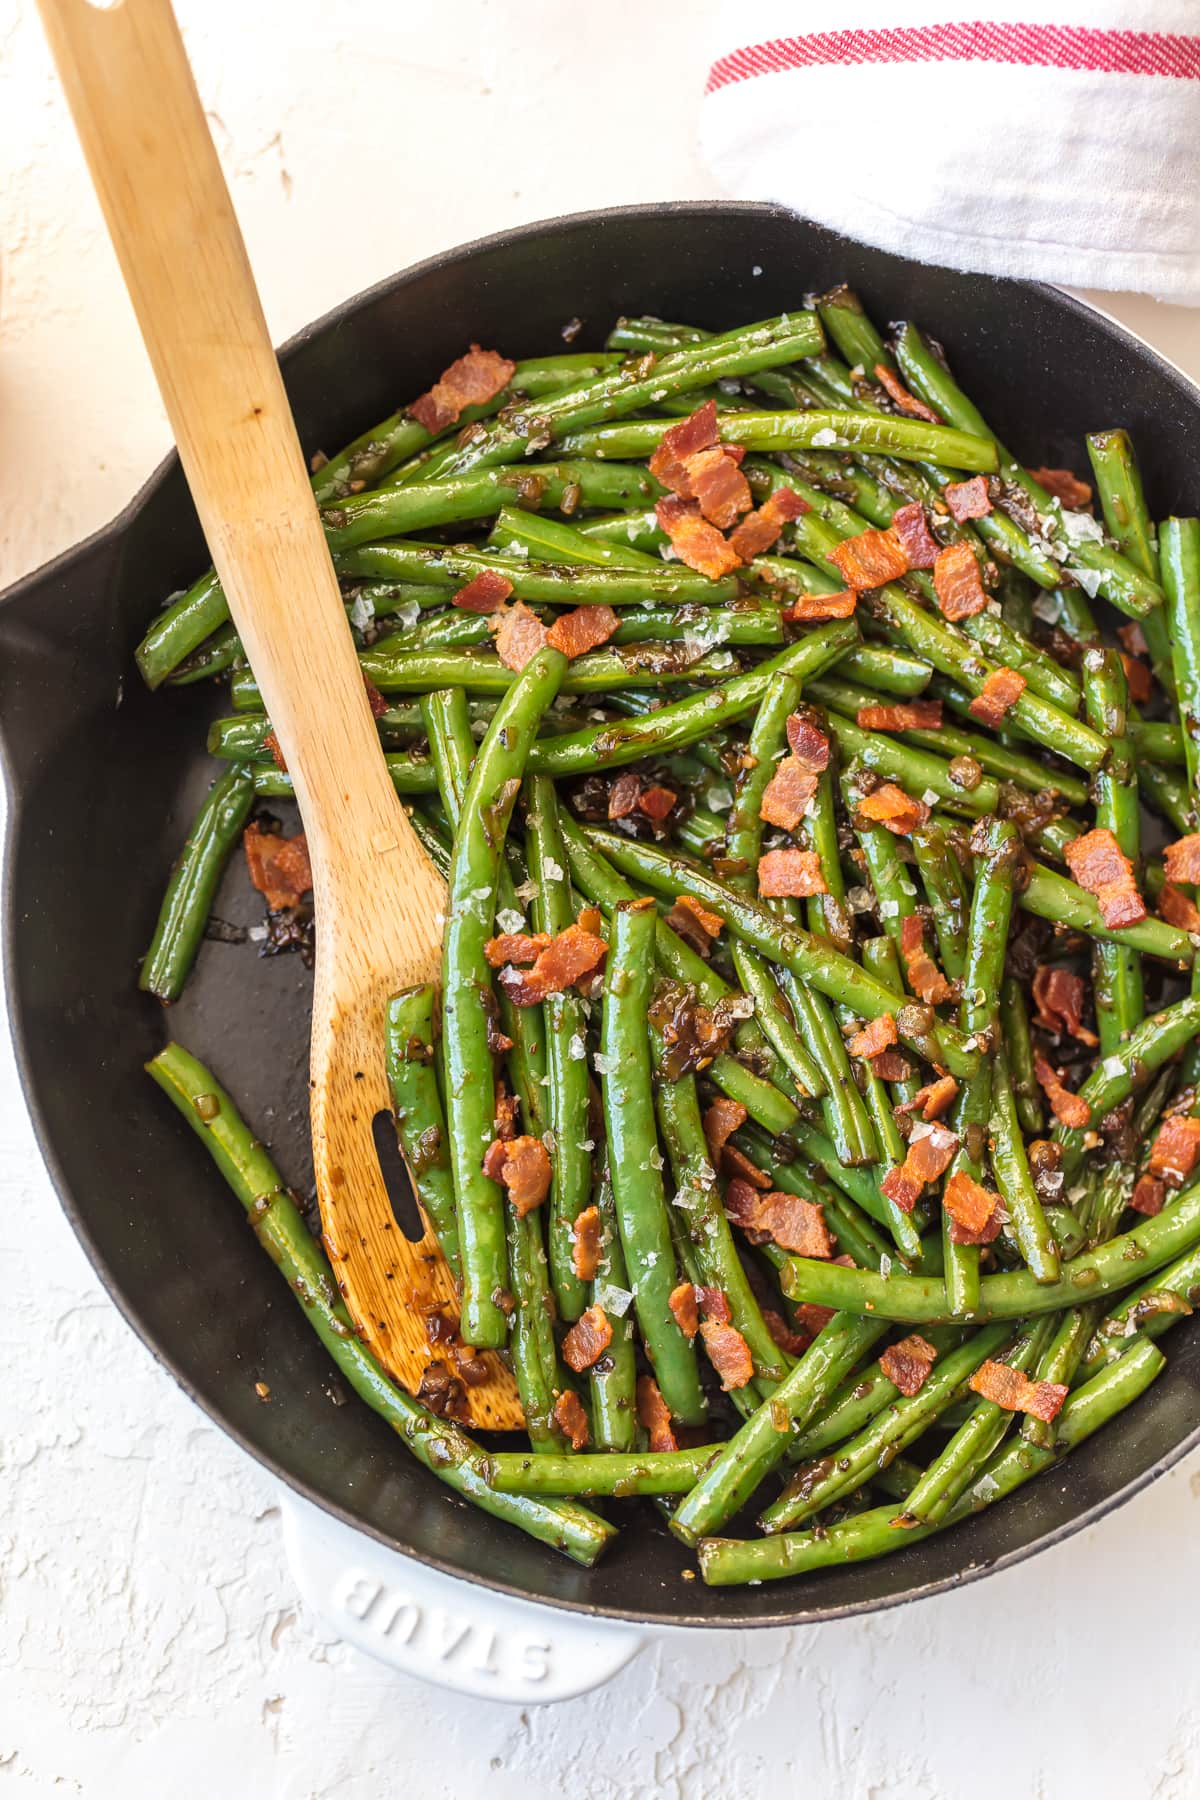 Bourbon Green Beans with Bacon made in a skillet